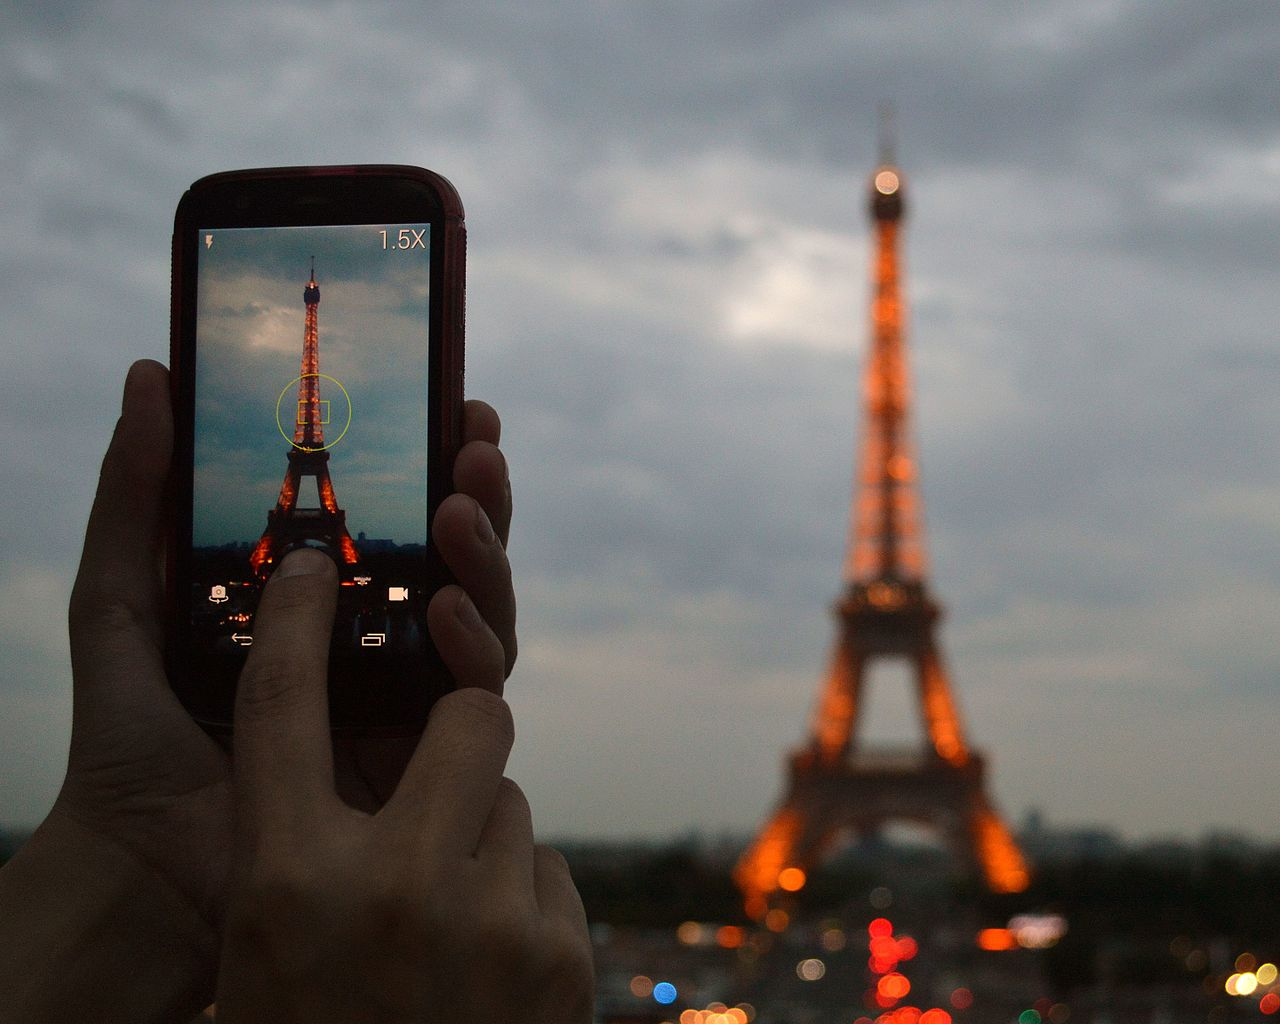 Photographing_the_Eiffel_Tower_at_dusk